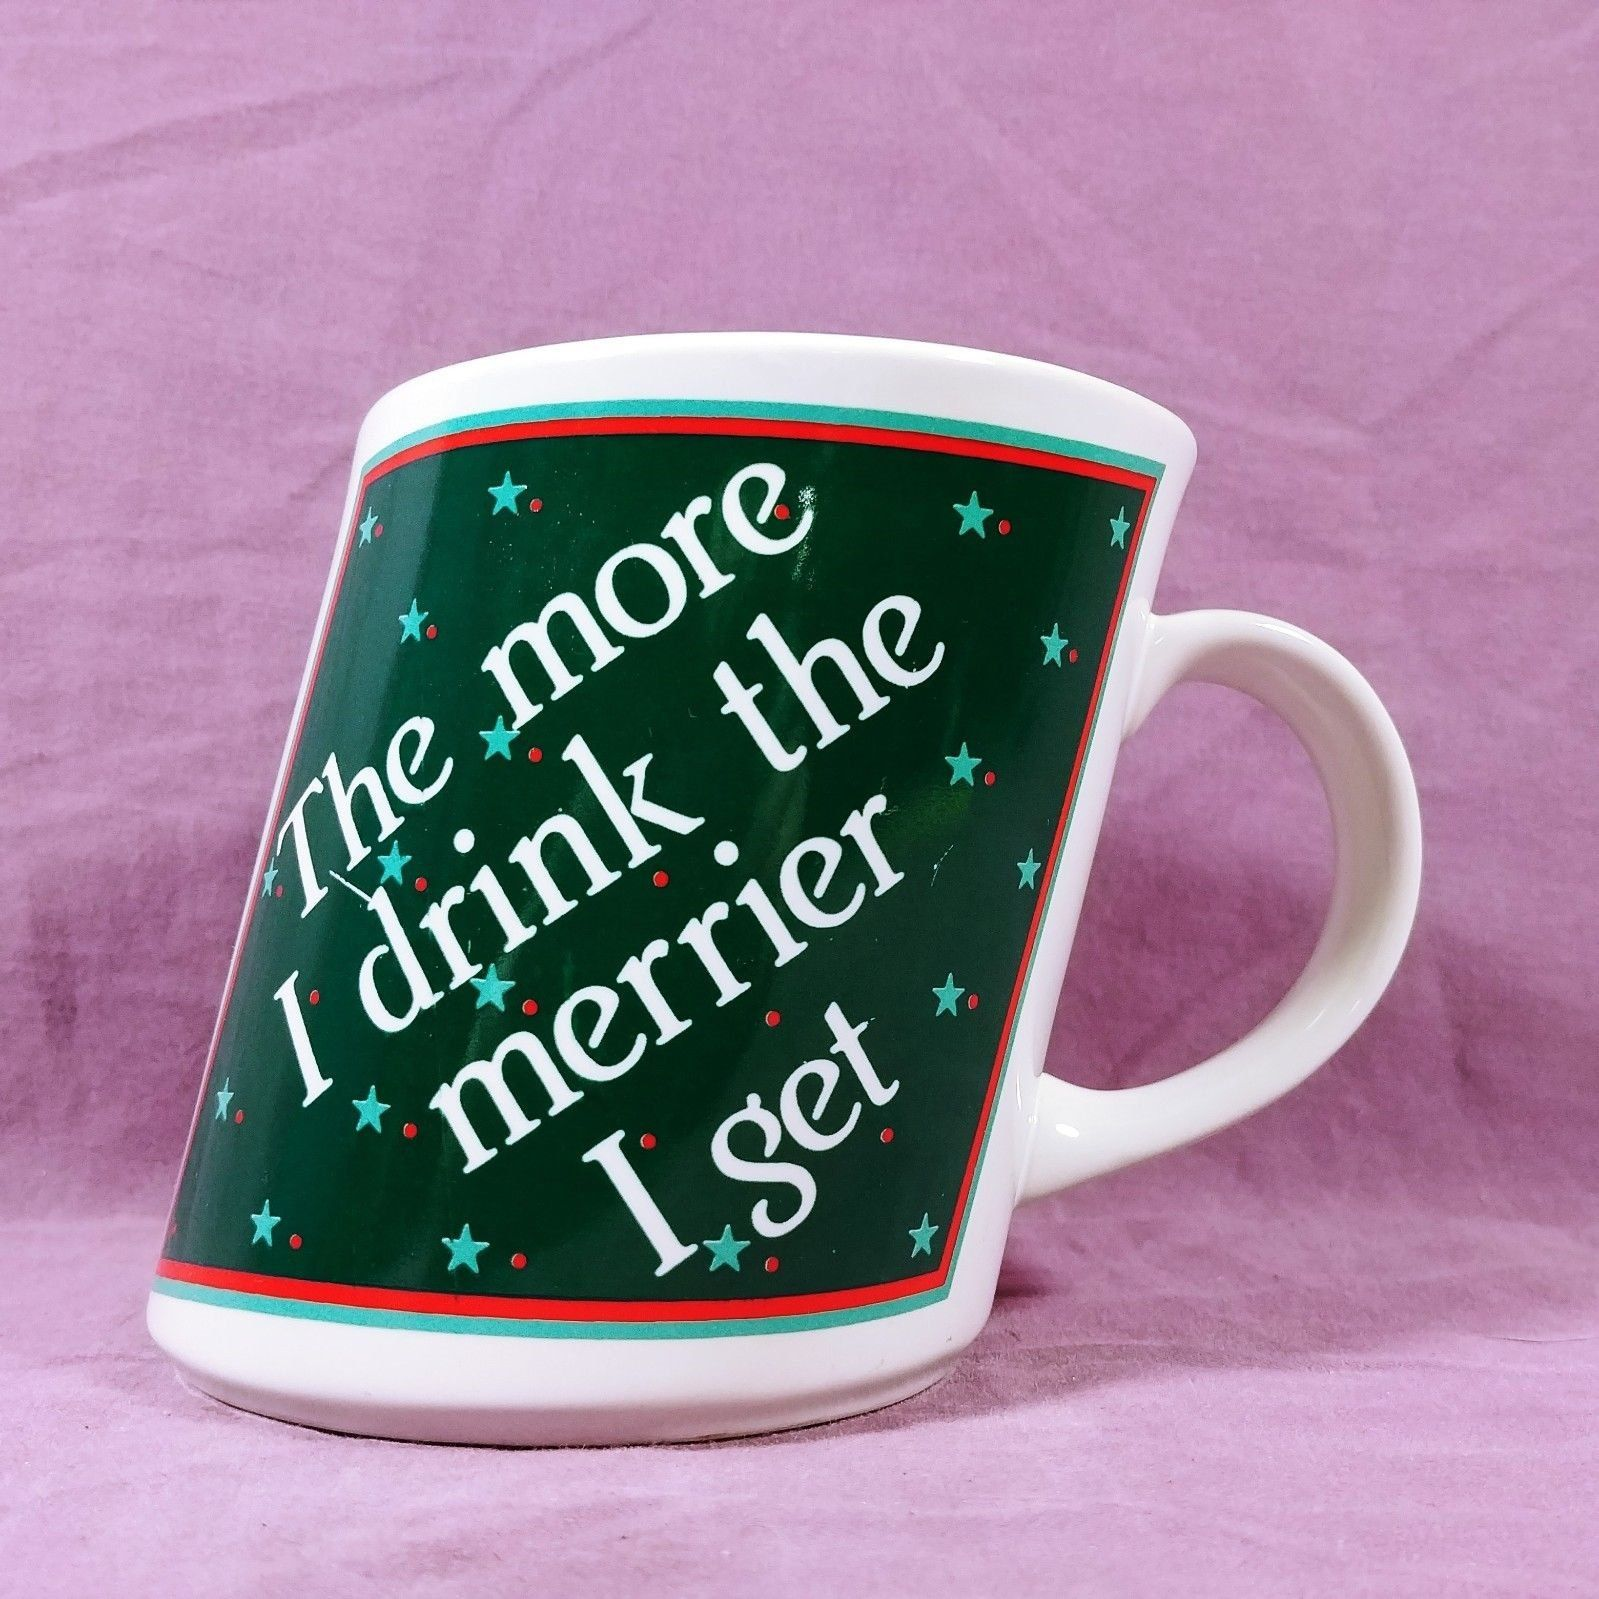 Coffee Mug Cup The More I Drink, The Merrier I Get! Humor